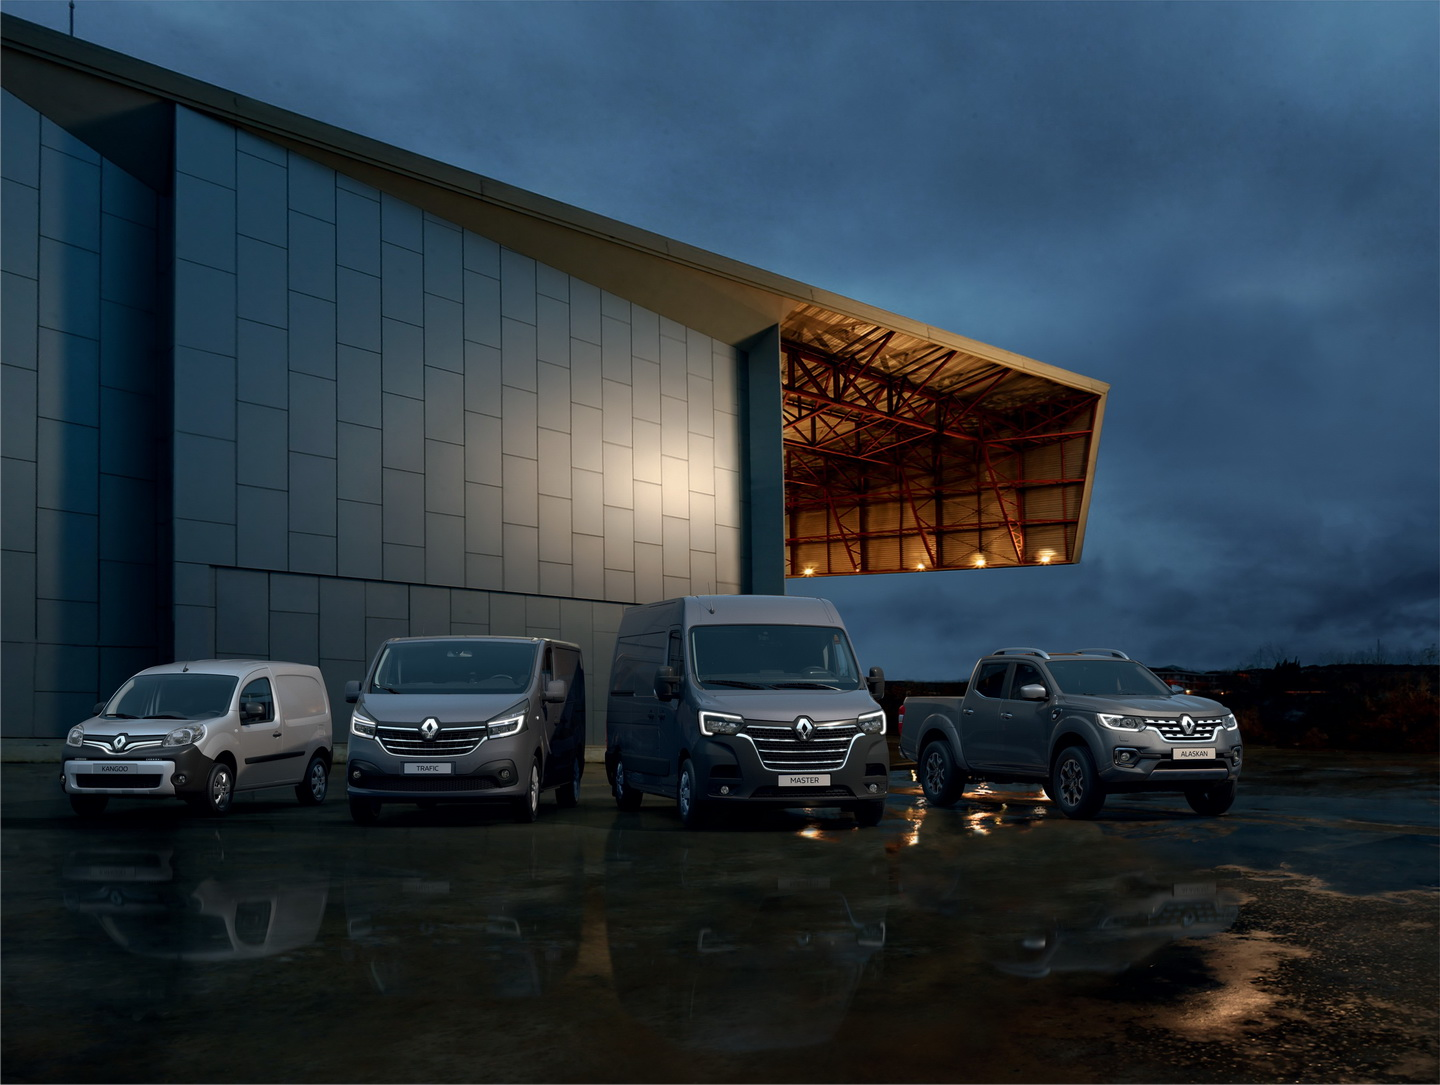 New 2019 Renault Trafic facelift 15